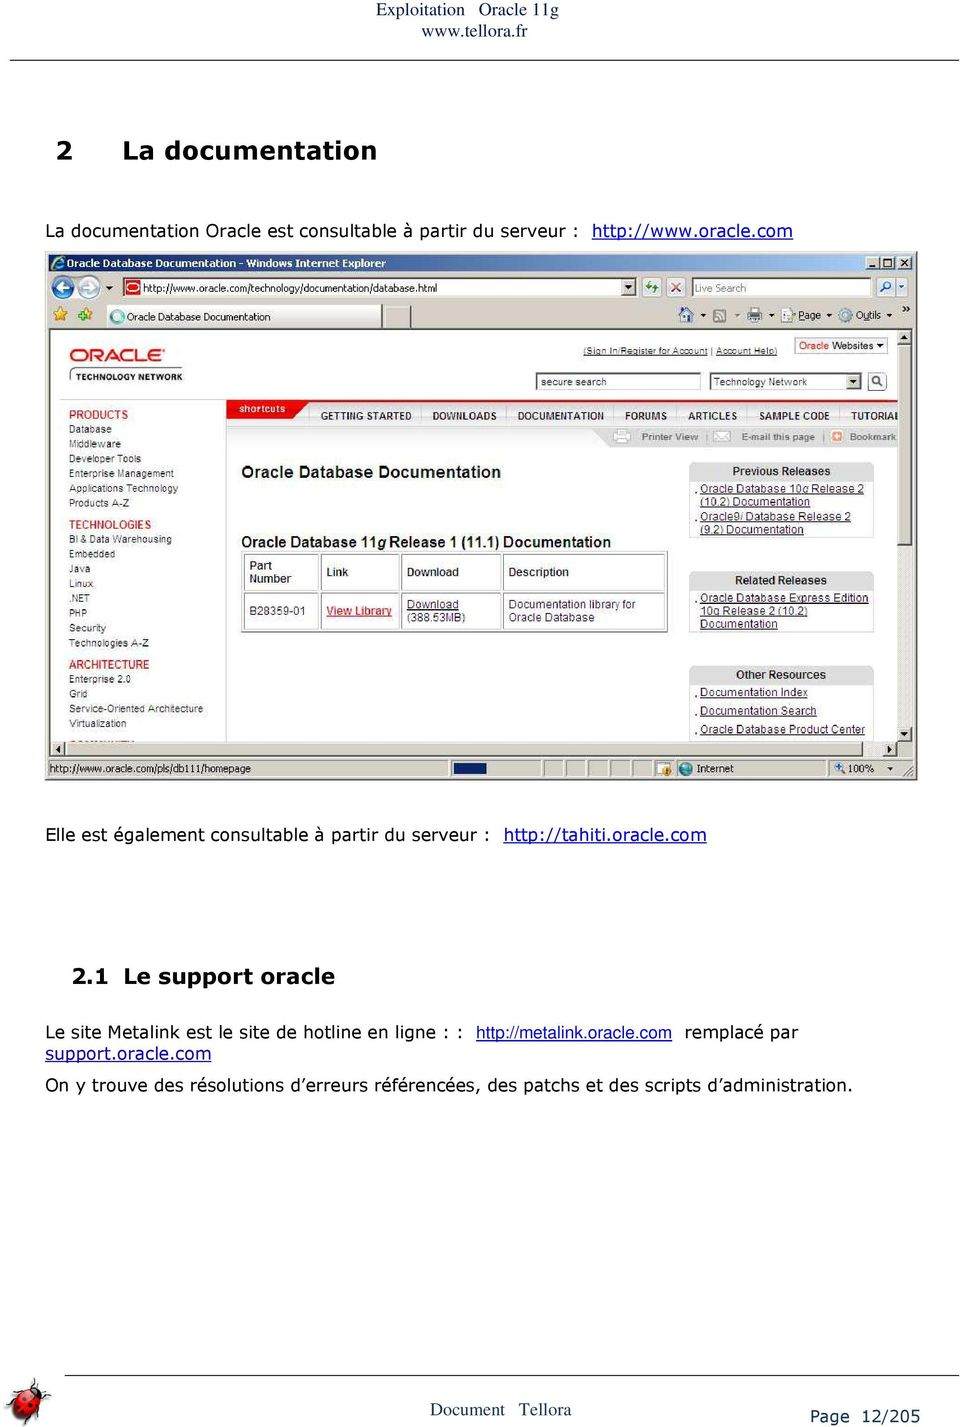 1 Le support oracle Le site Metalink est le site de hotline en ligne : : http://metalink.oracle.com remplacé par support.